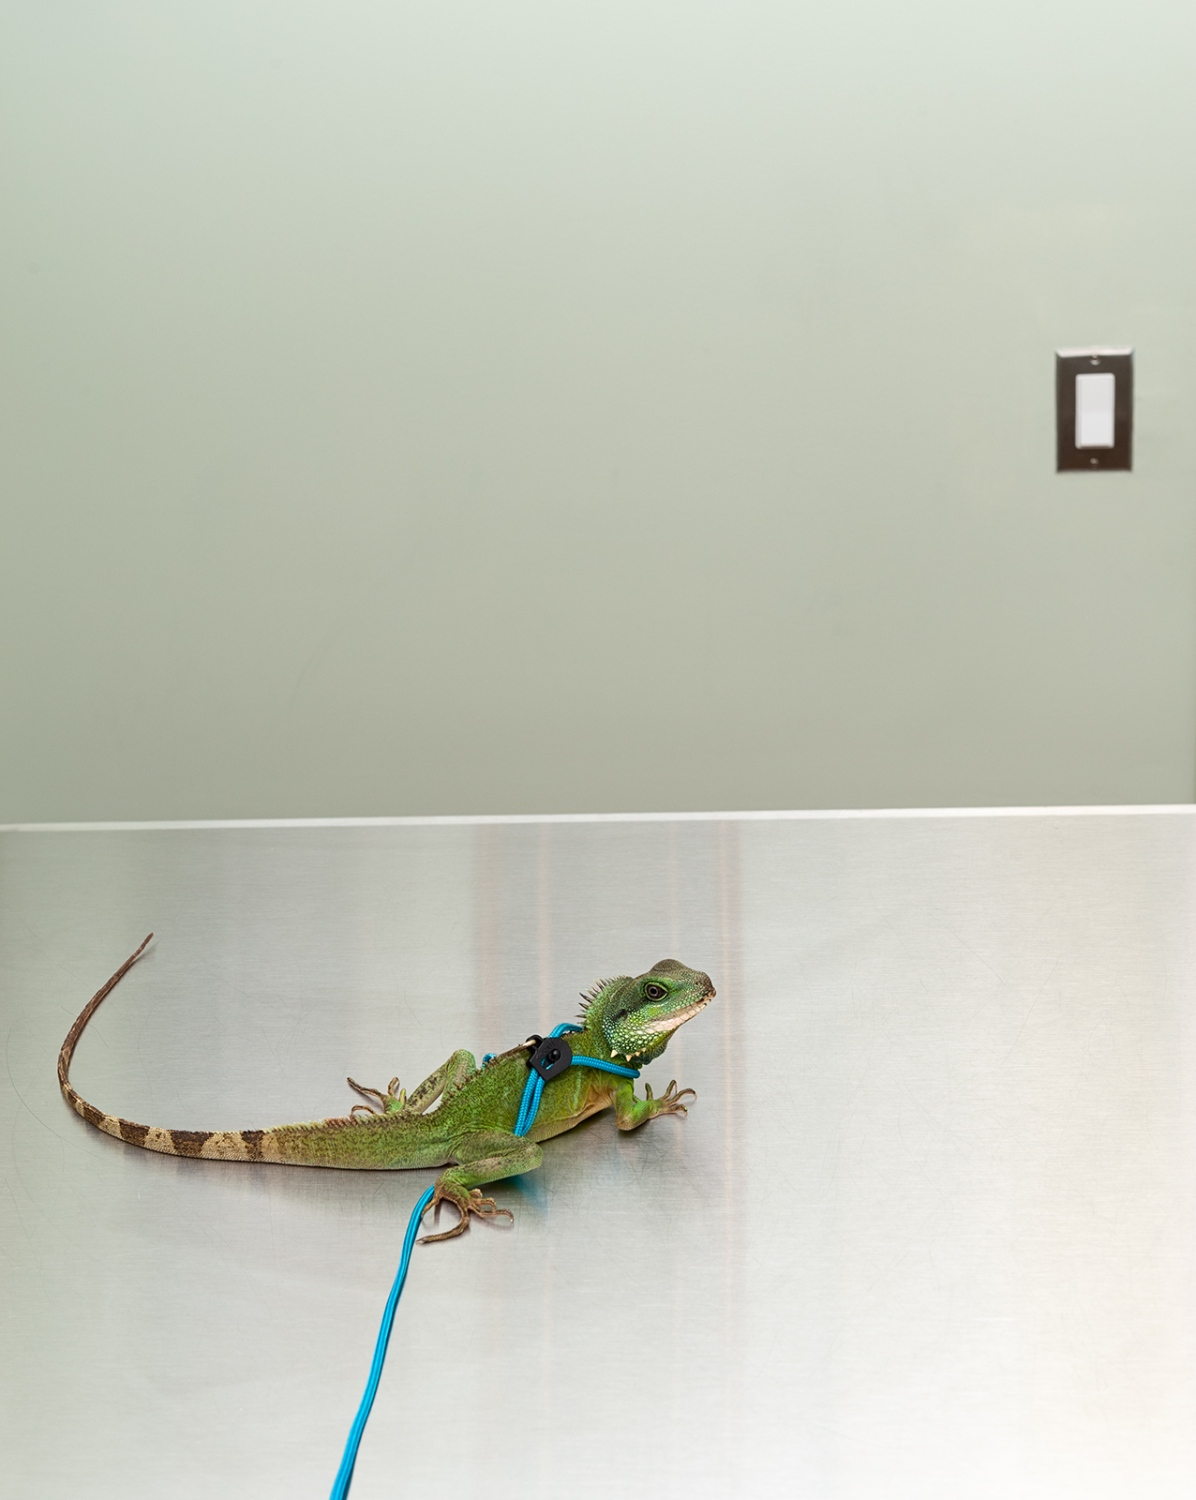 A Chinese Water Dragon on a leash, waiting for his exam.